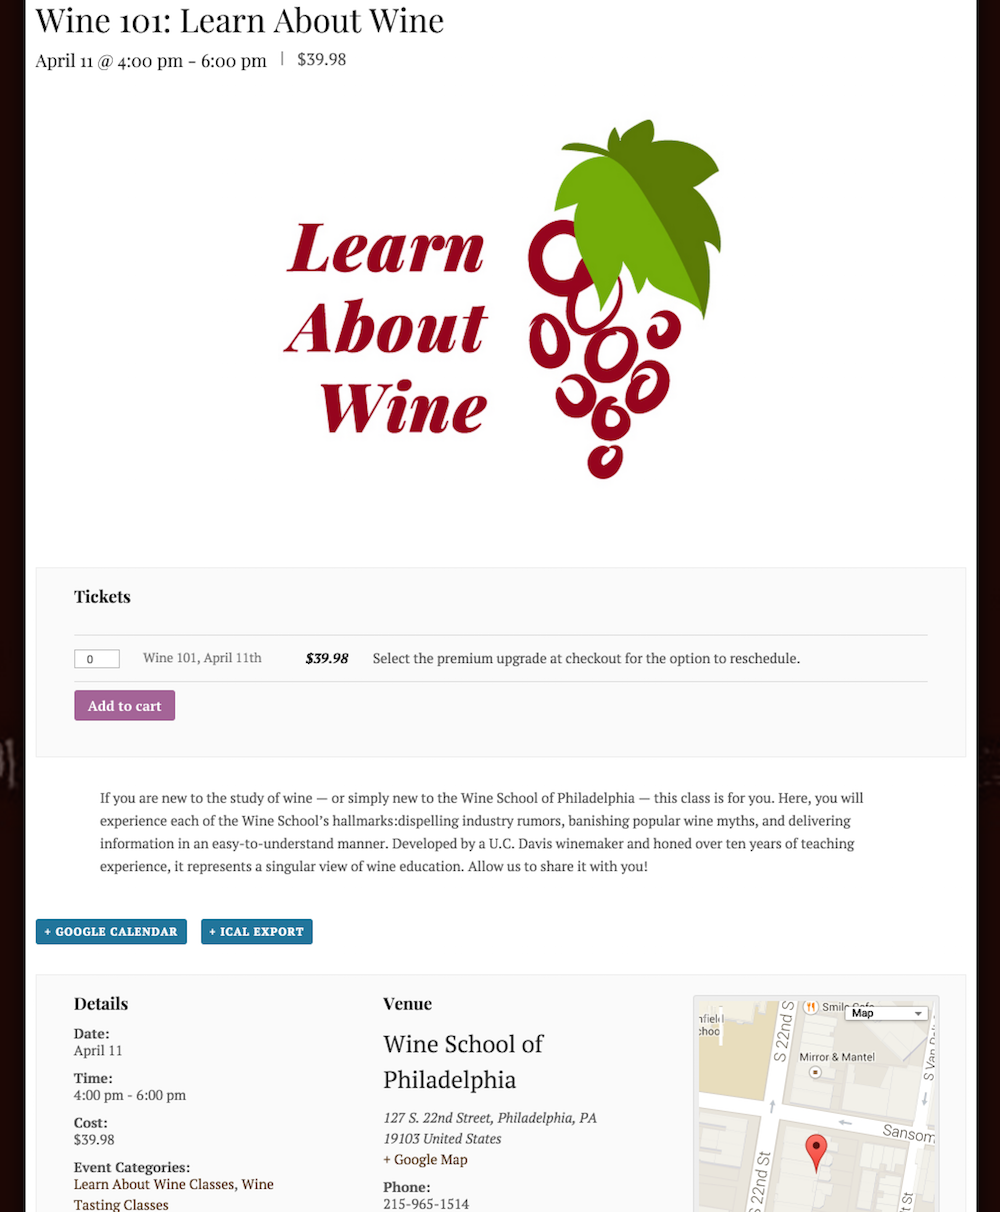 showcase - wine school - event with tickets 3